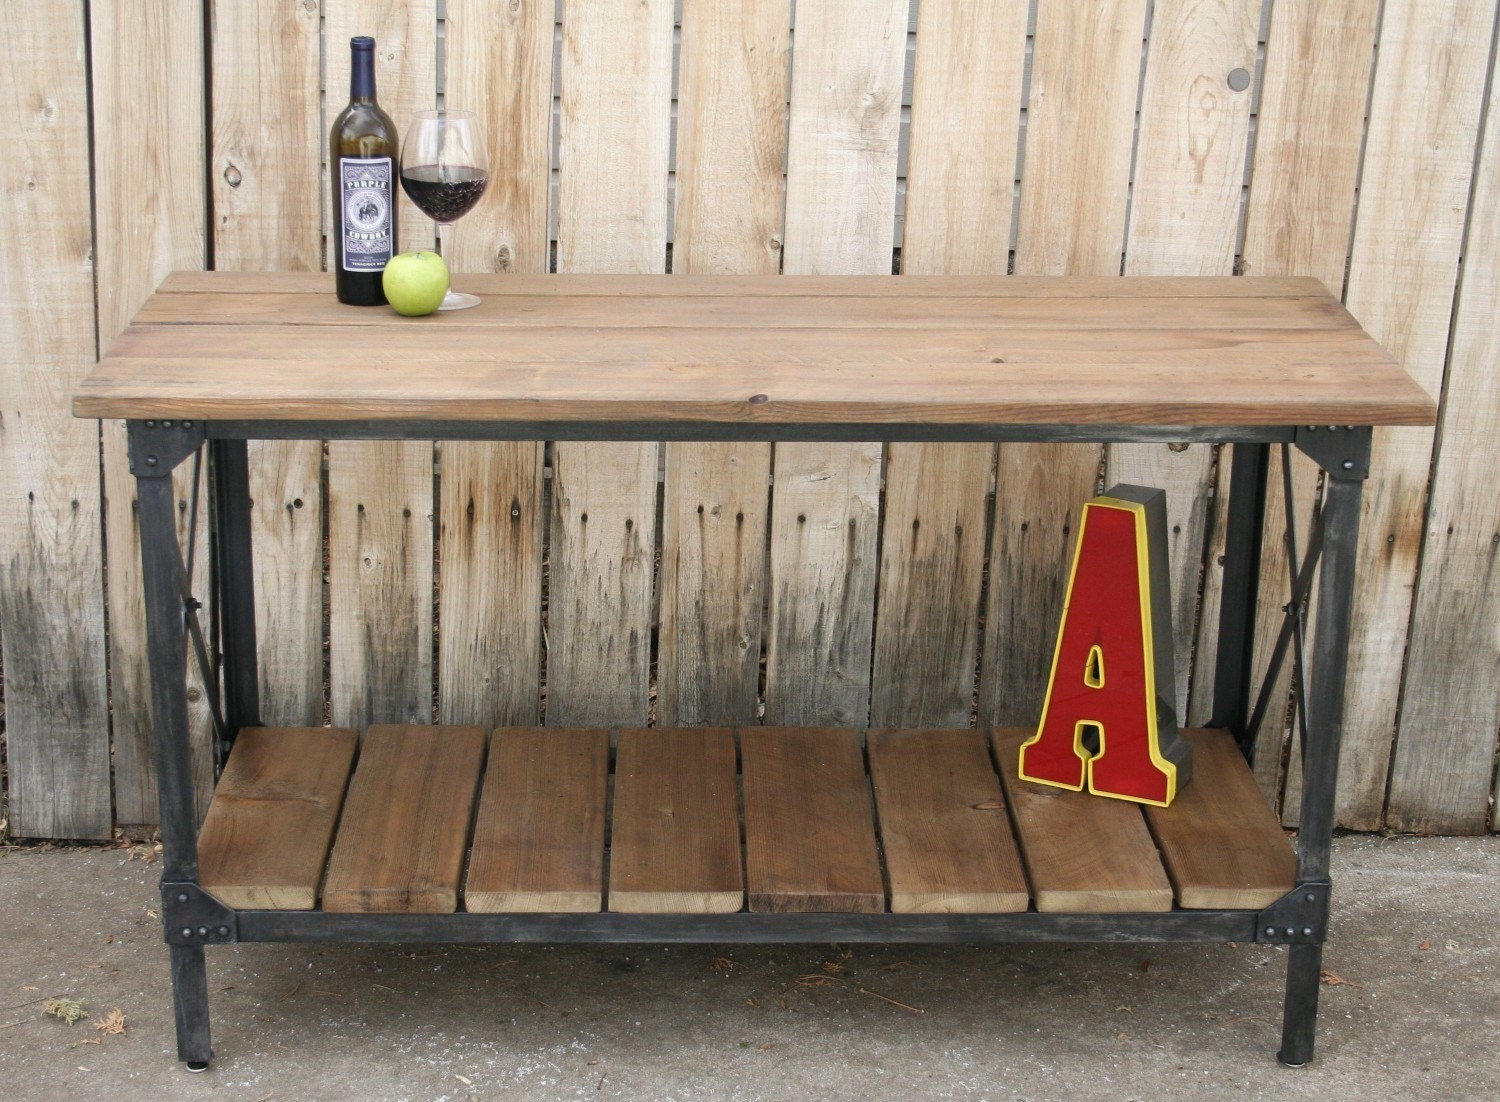 scrap metal and reclaimed wood industrial style furniture buy to fit